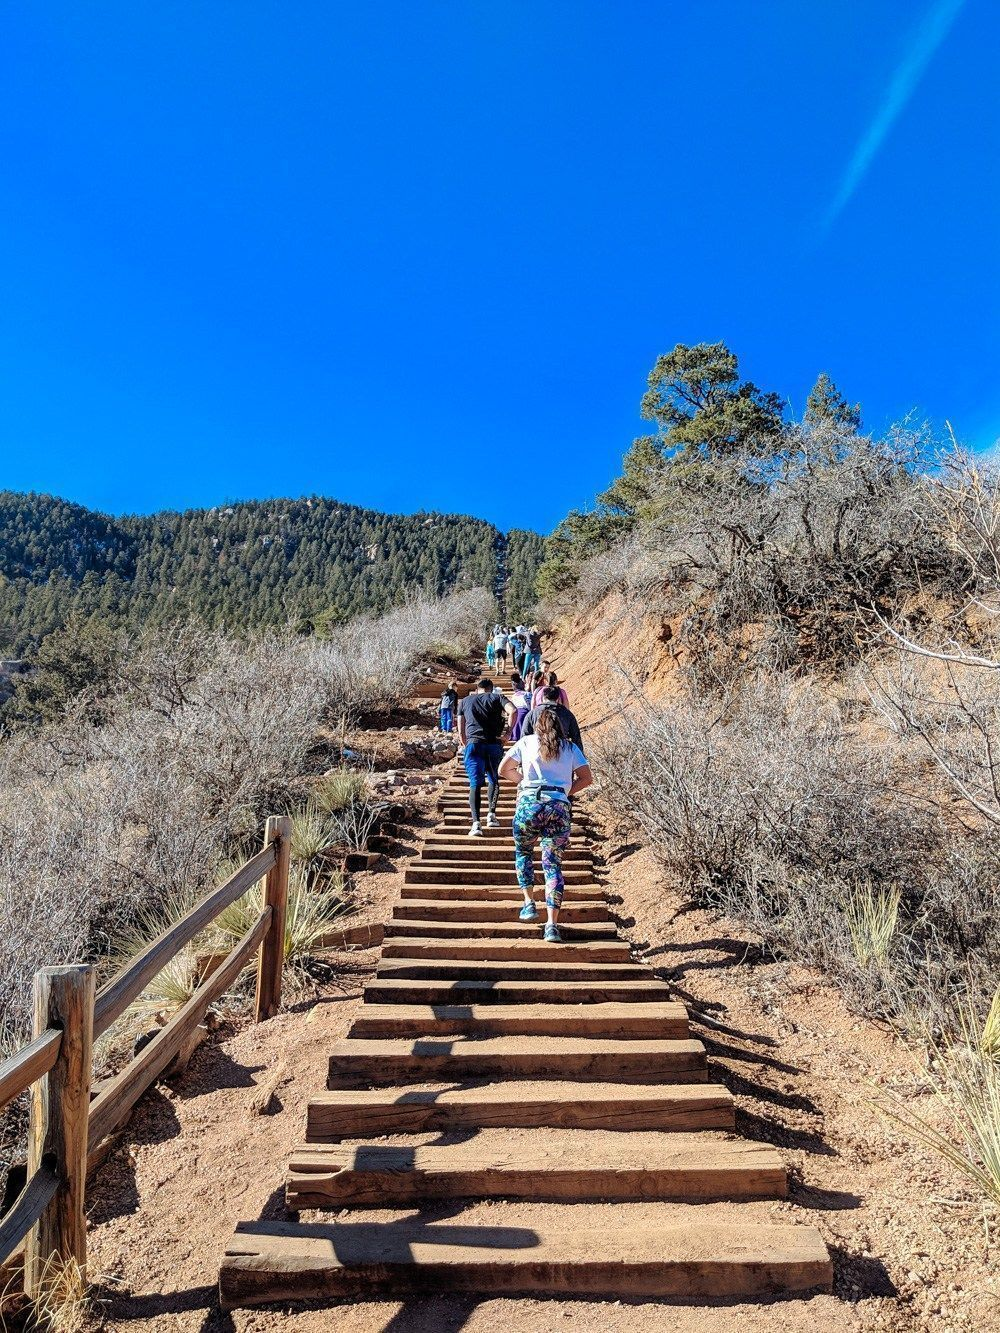 The Incline in Manitou Springs: Everything You Need to Know to Hike (For Free #manitousprings The Incline in Manitou Springs: Everything You Need to Know to Hike (For Free!) | Countdown to Friday #manitousprings The Incline in Manitou Springs: Everything You Need to Know to Hike (For Free #manitousprings The Incline in Manitou Springs: Everything You Need to Know to Hike (For Free!) | Countdown to Friday #manitousprings The Incline in Manitou Springs: Everything You Need to Know to Hike (For Fre #manitousprings